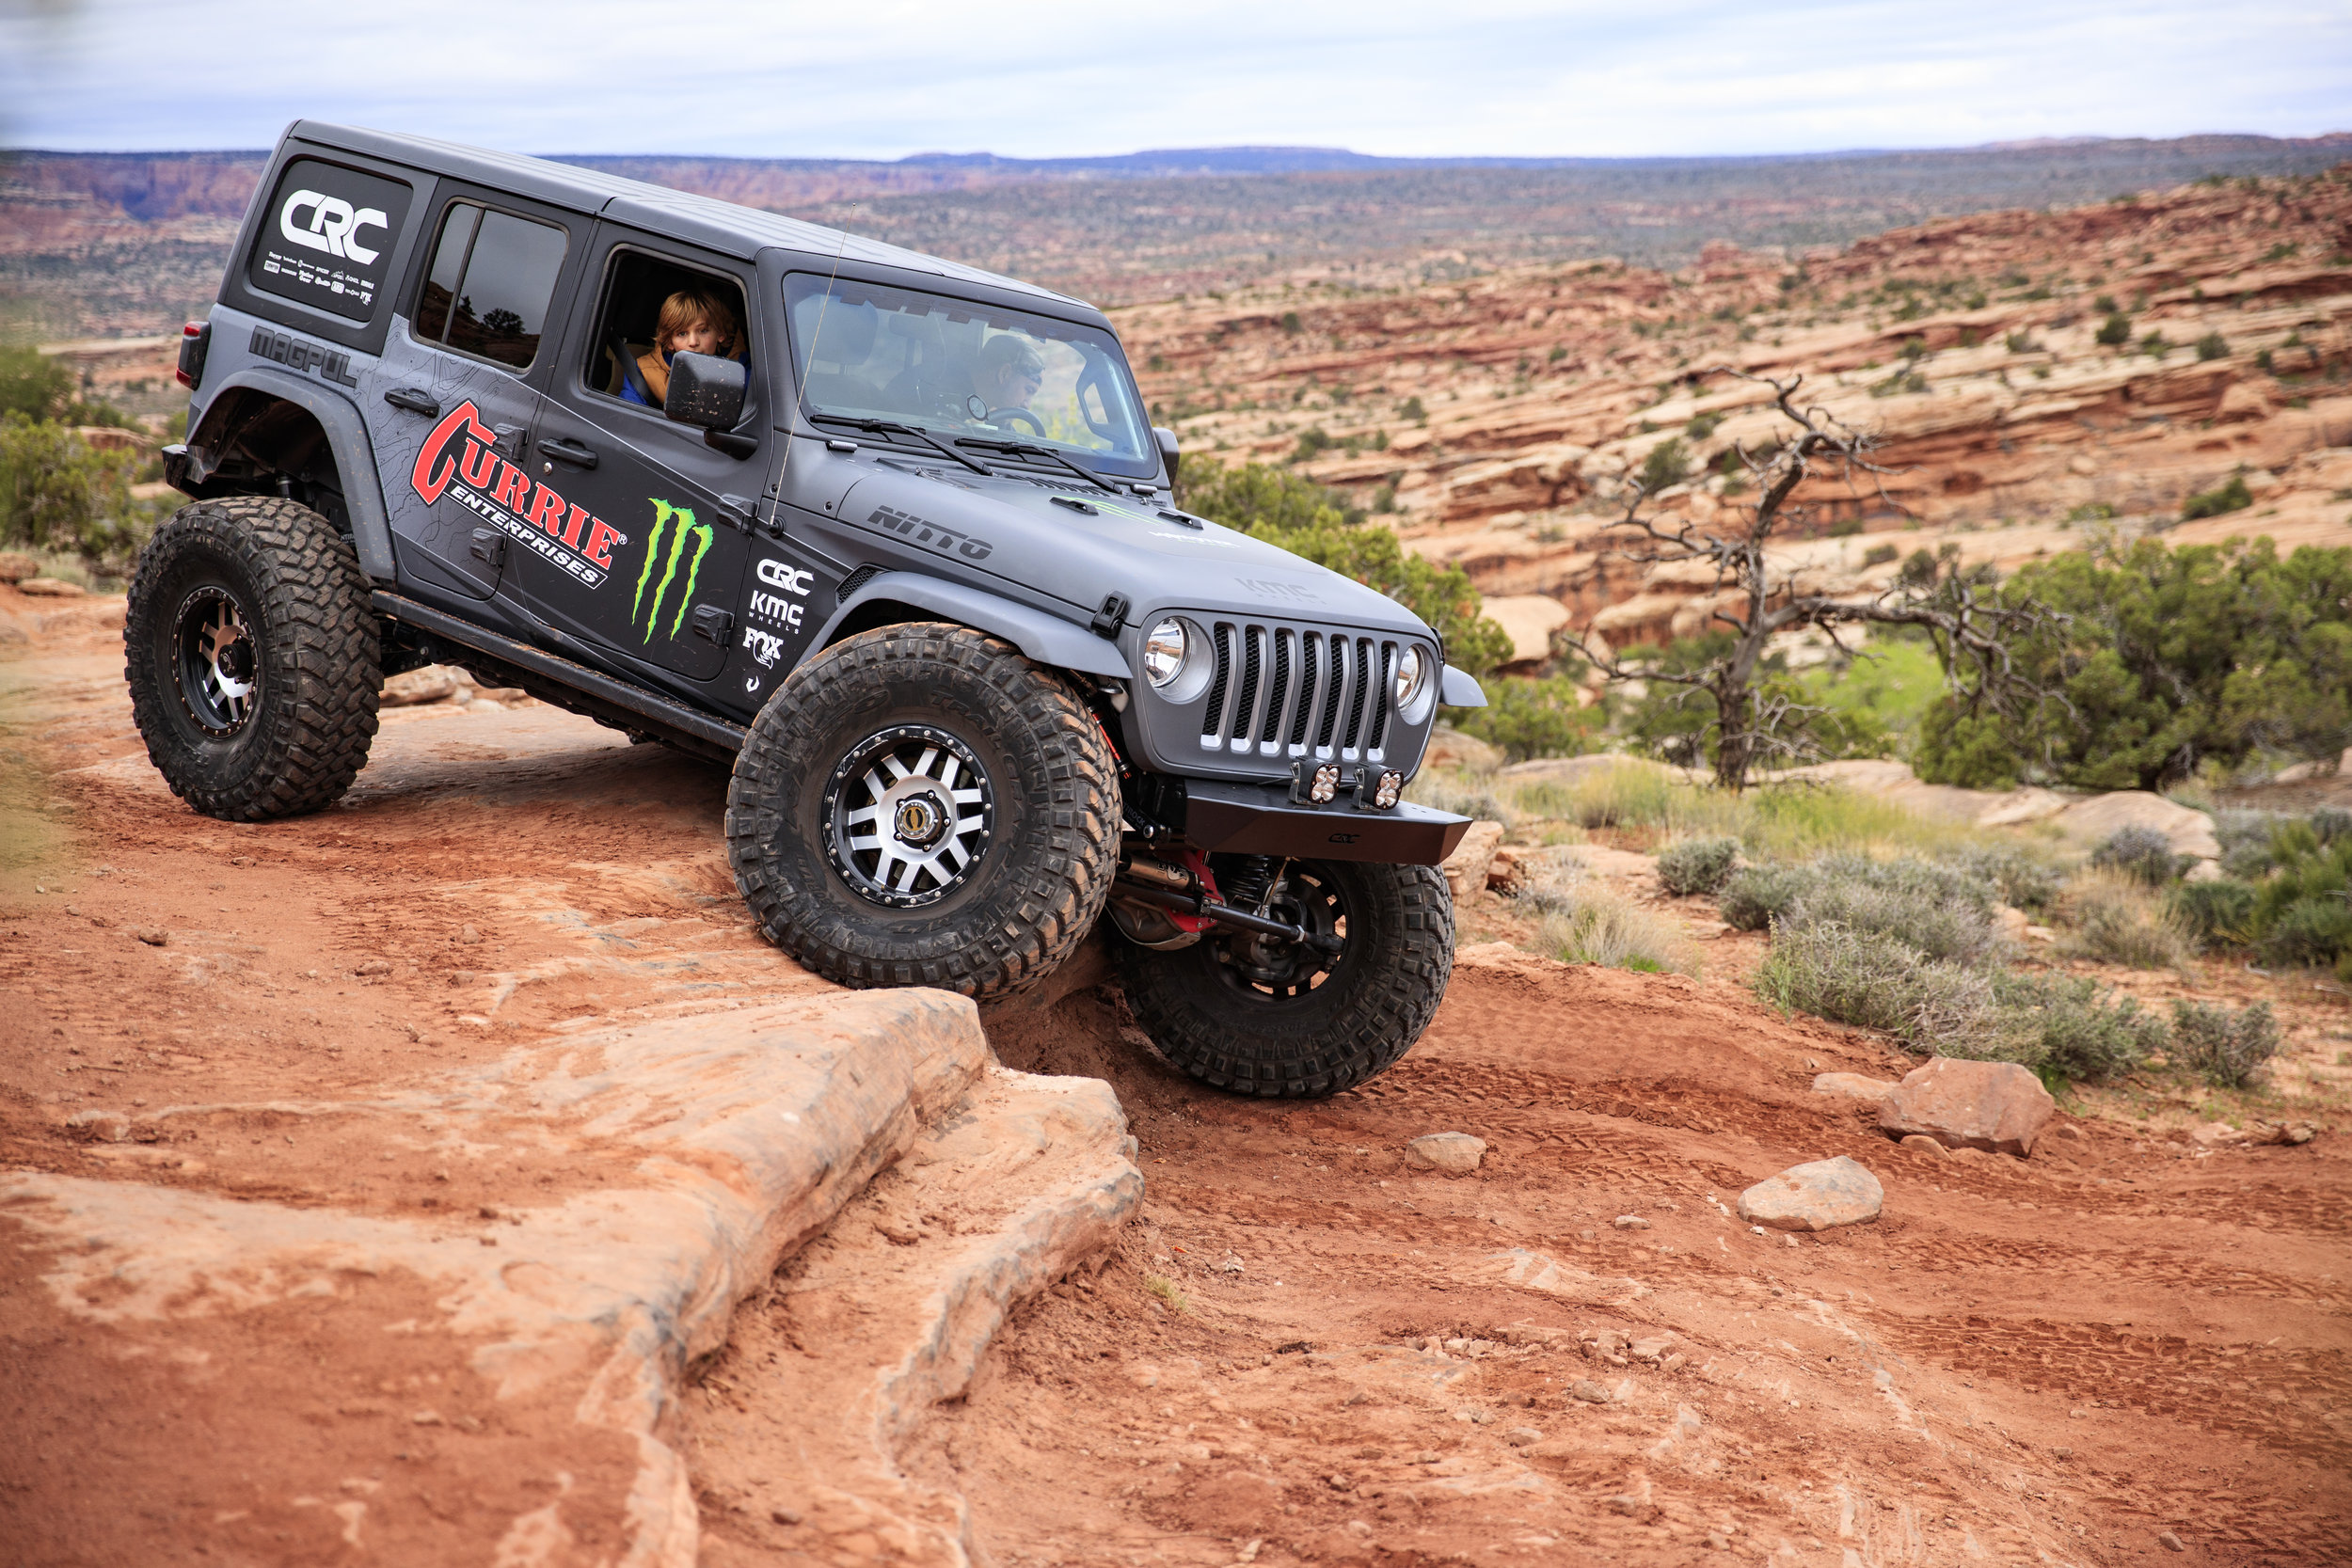 4_17_CaseyCurrie_MonsterCurrieJeepJL_MoabEJS_GoldBarRim_004.jpg